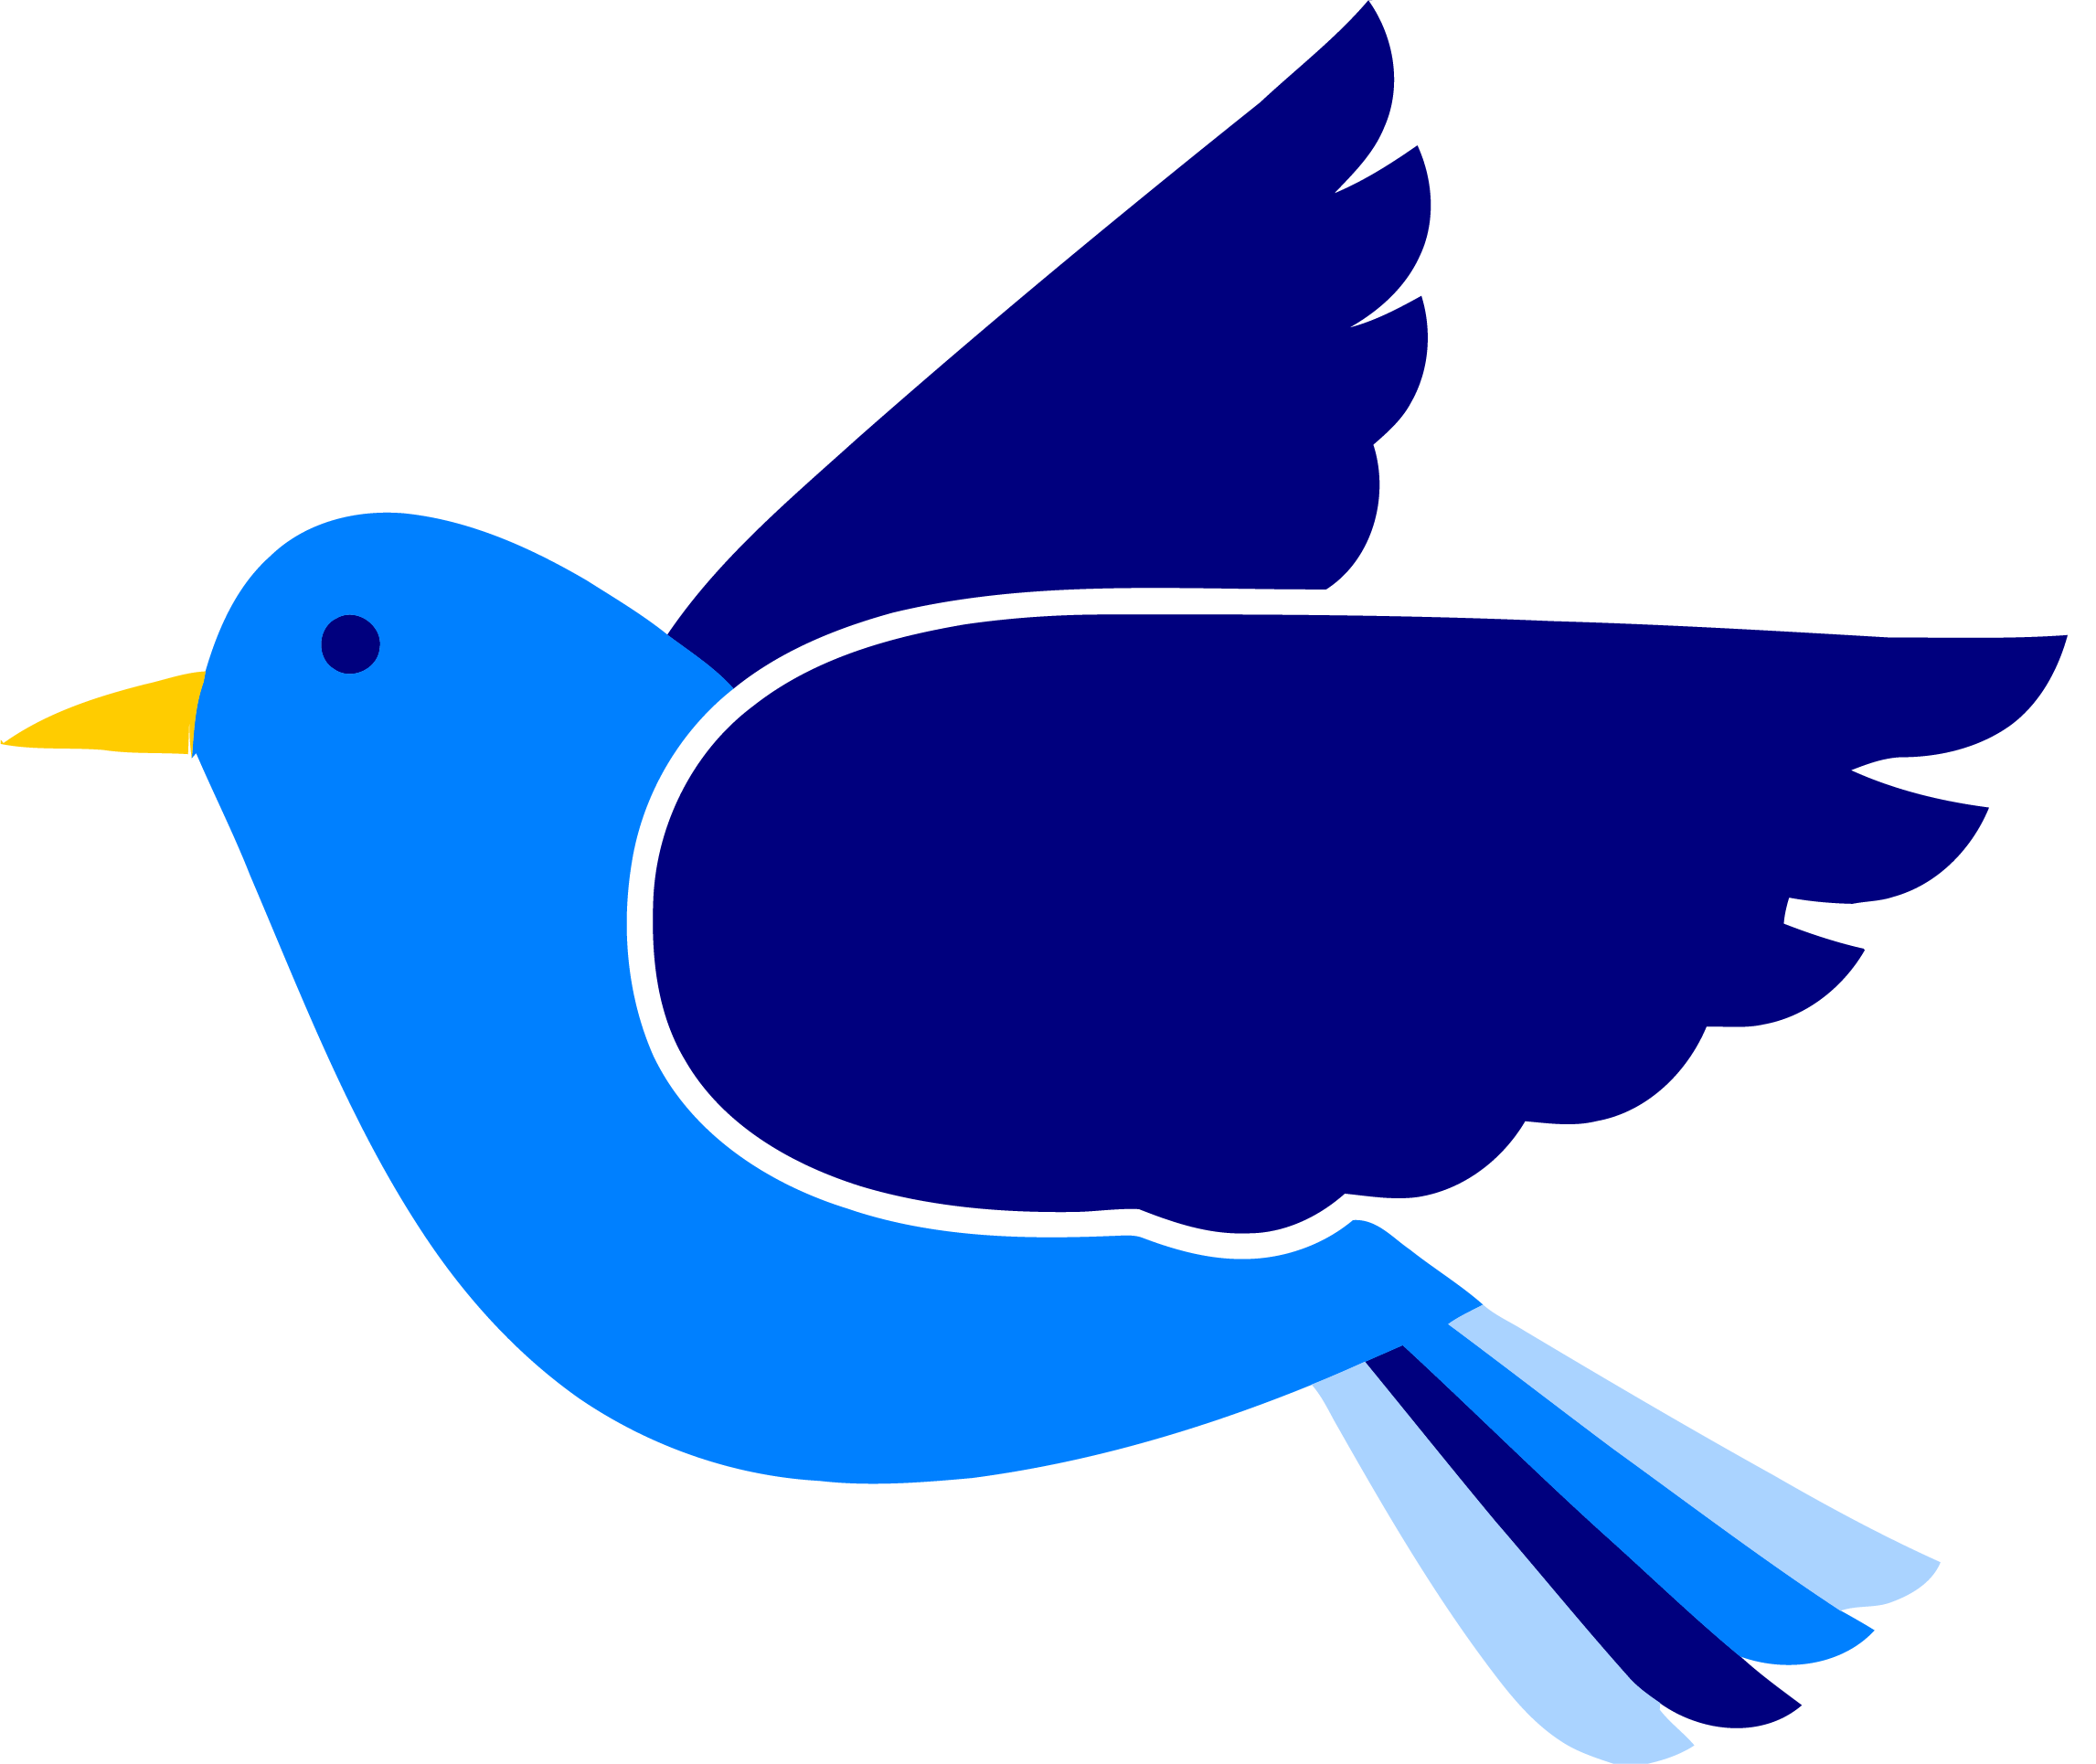 Blue png clipartly comclipartly. Nursery clipart bird